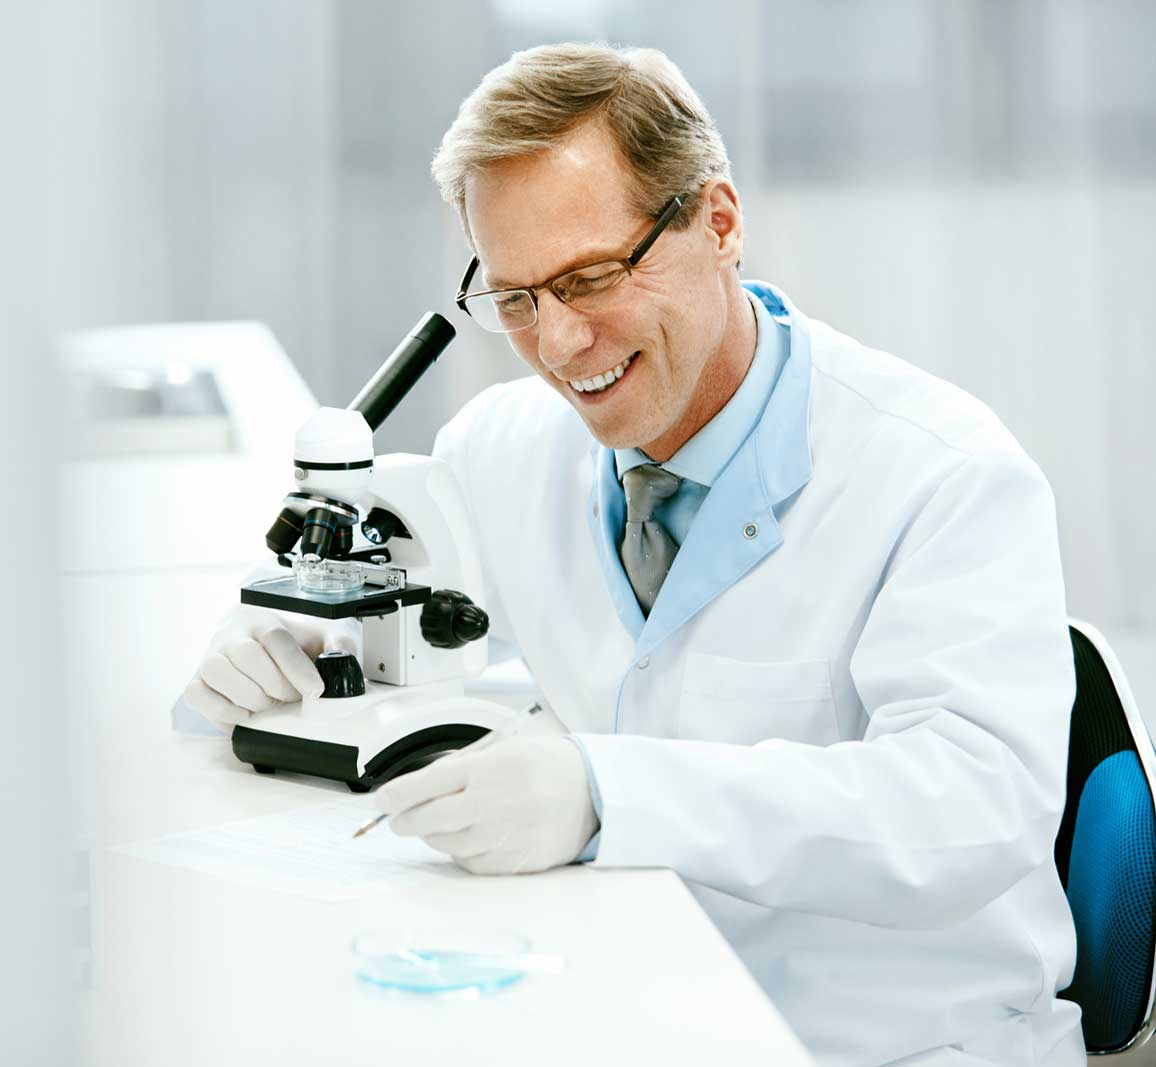 Clinical Test. Scientist With Microscope In Laboratory